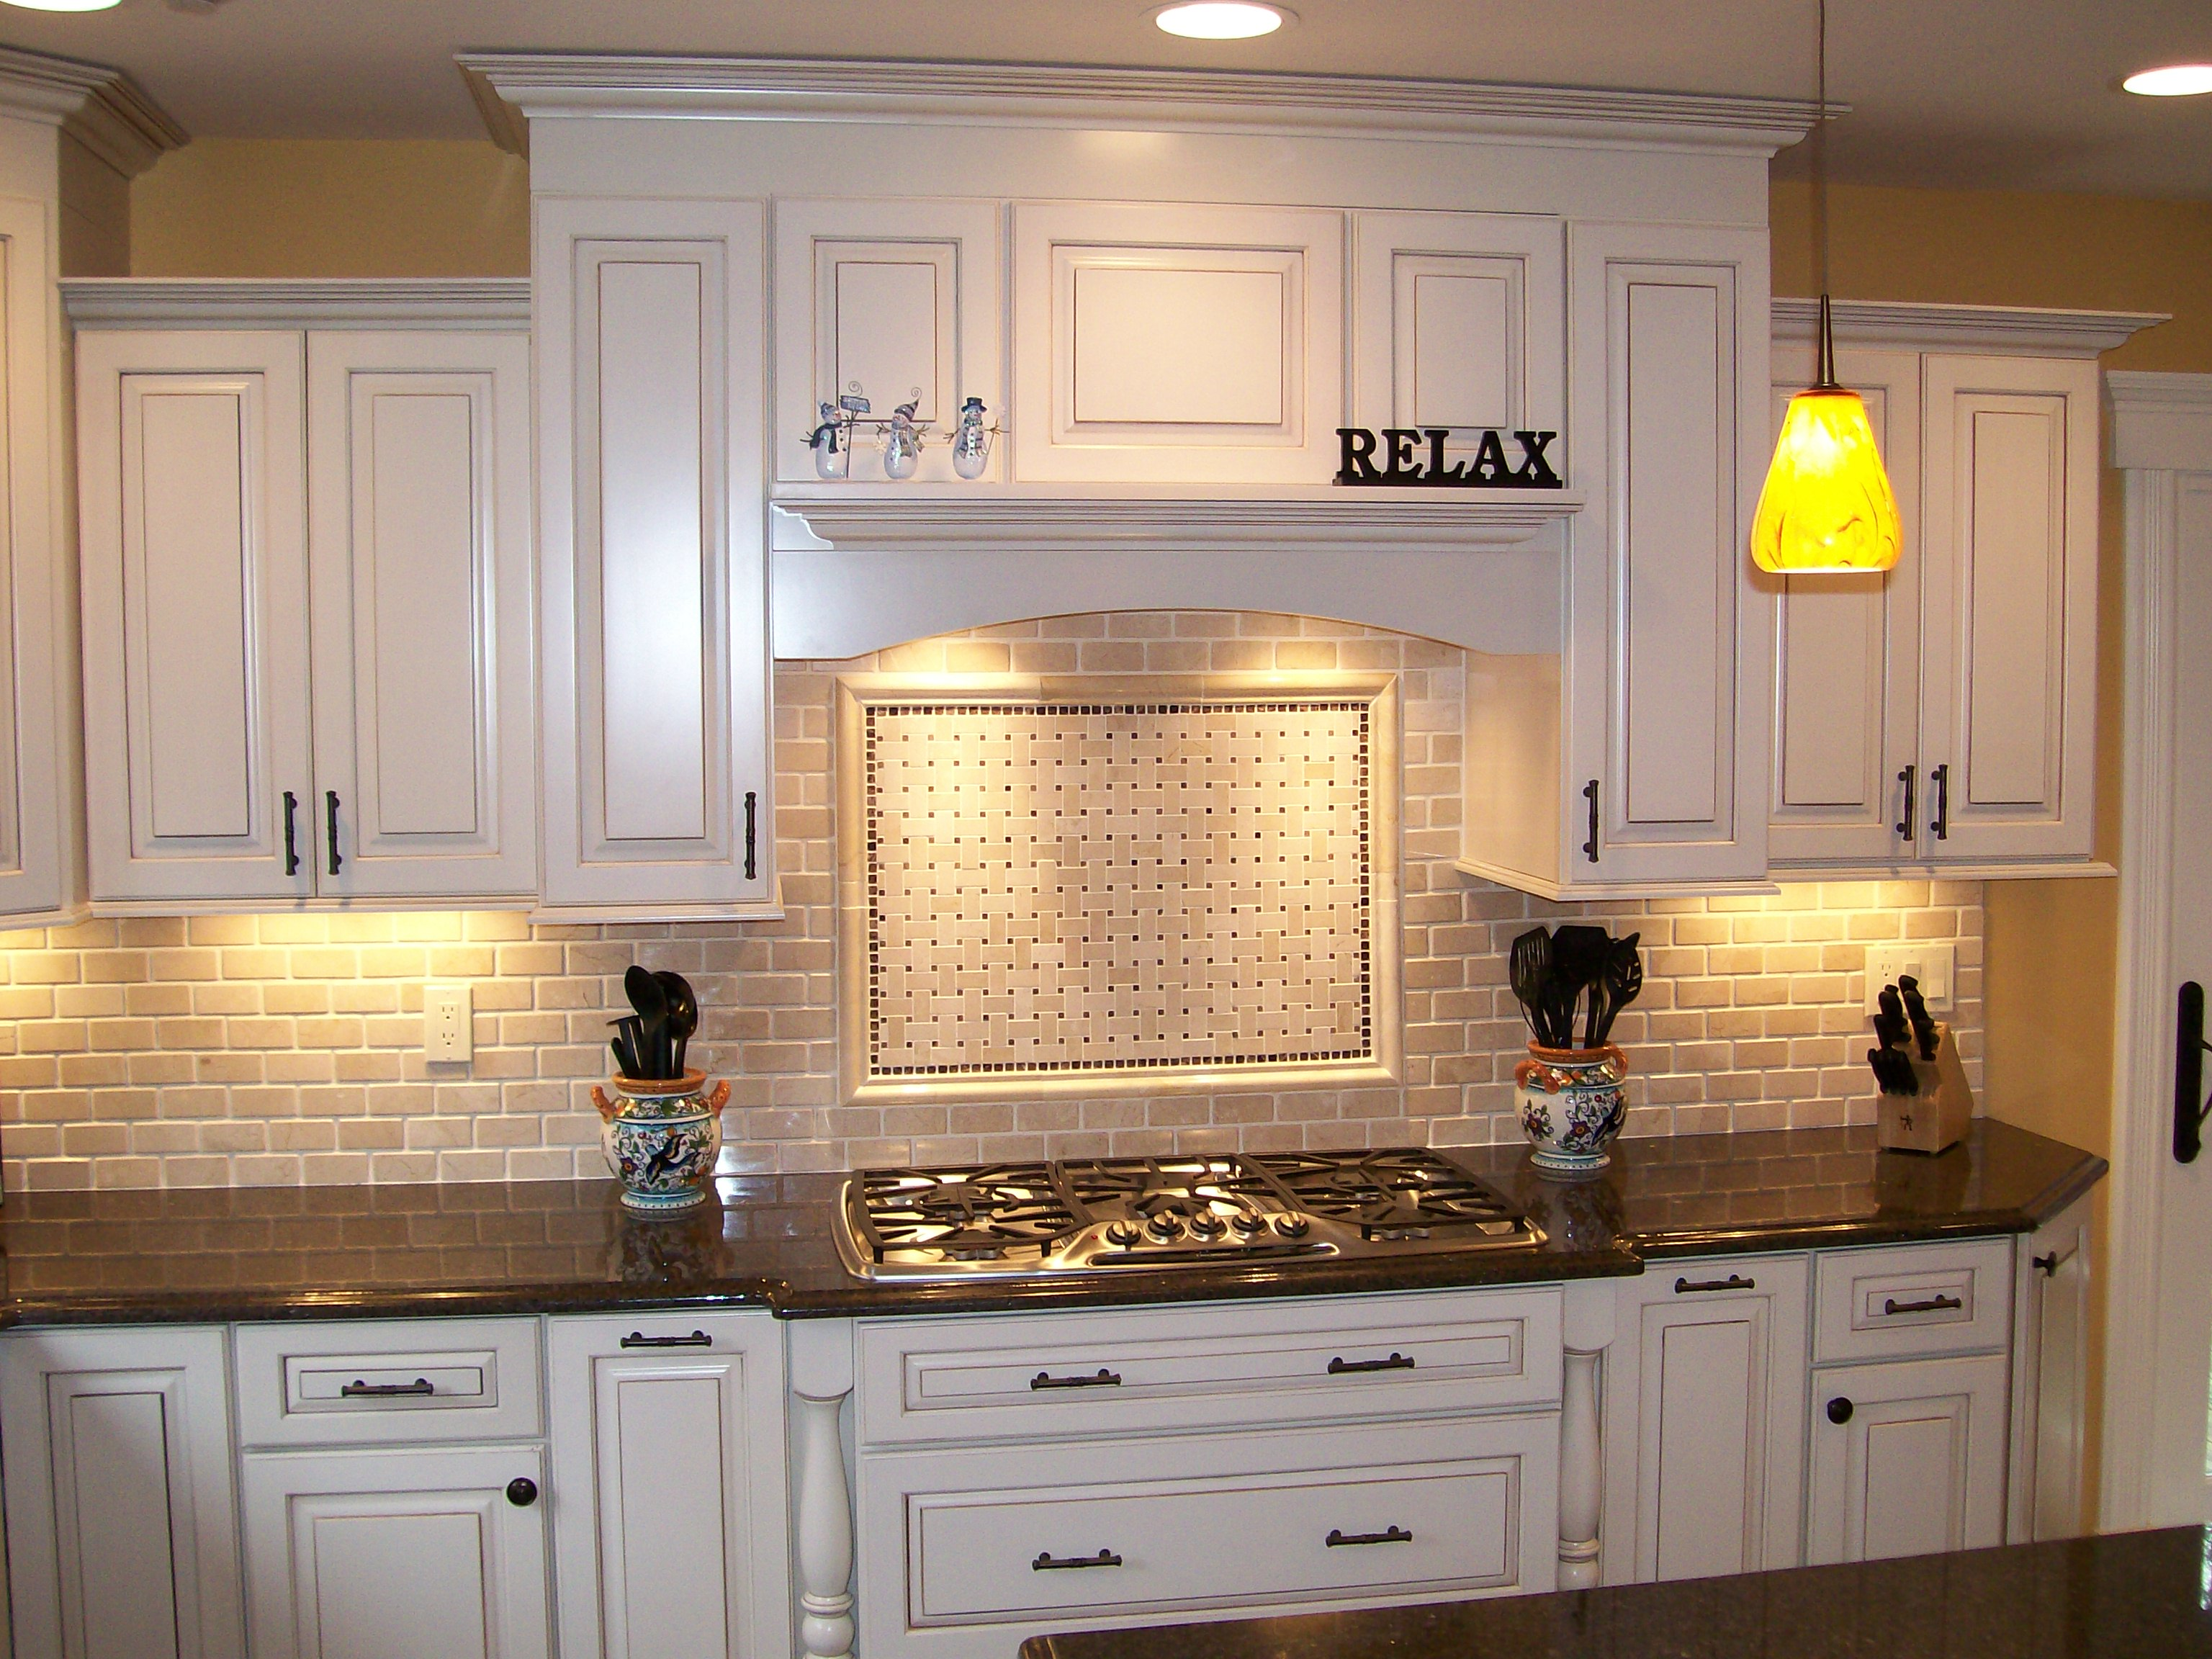 Kitchen Off White Kitchen Backsplash Remarkable On And Tile Ideas Cabinets Fantastic 25 Off White Kitchen Backsplash Modern On Intended Ideas For Cabinets 13 Off White Kitchen Backsplash Contemporary On Intended Cabinets